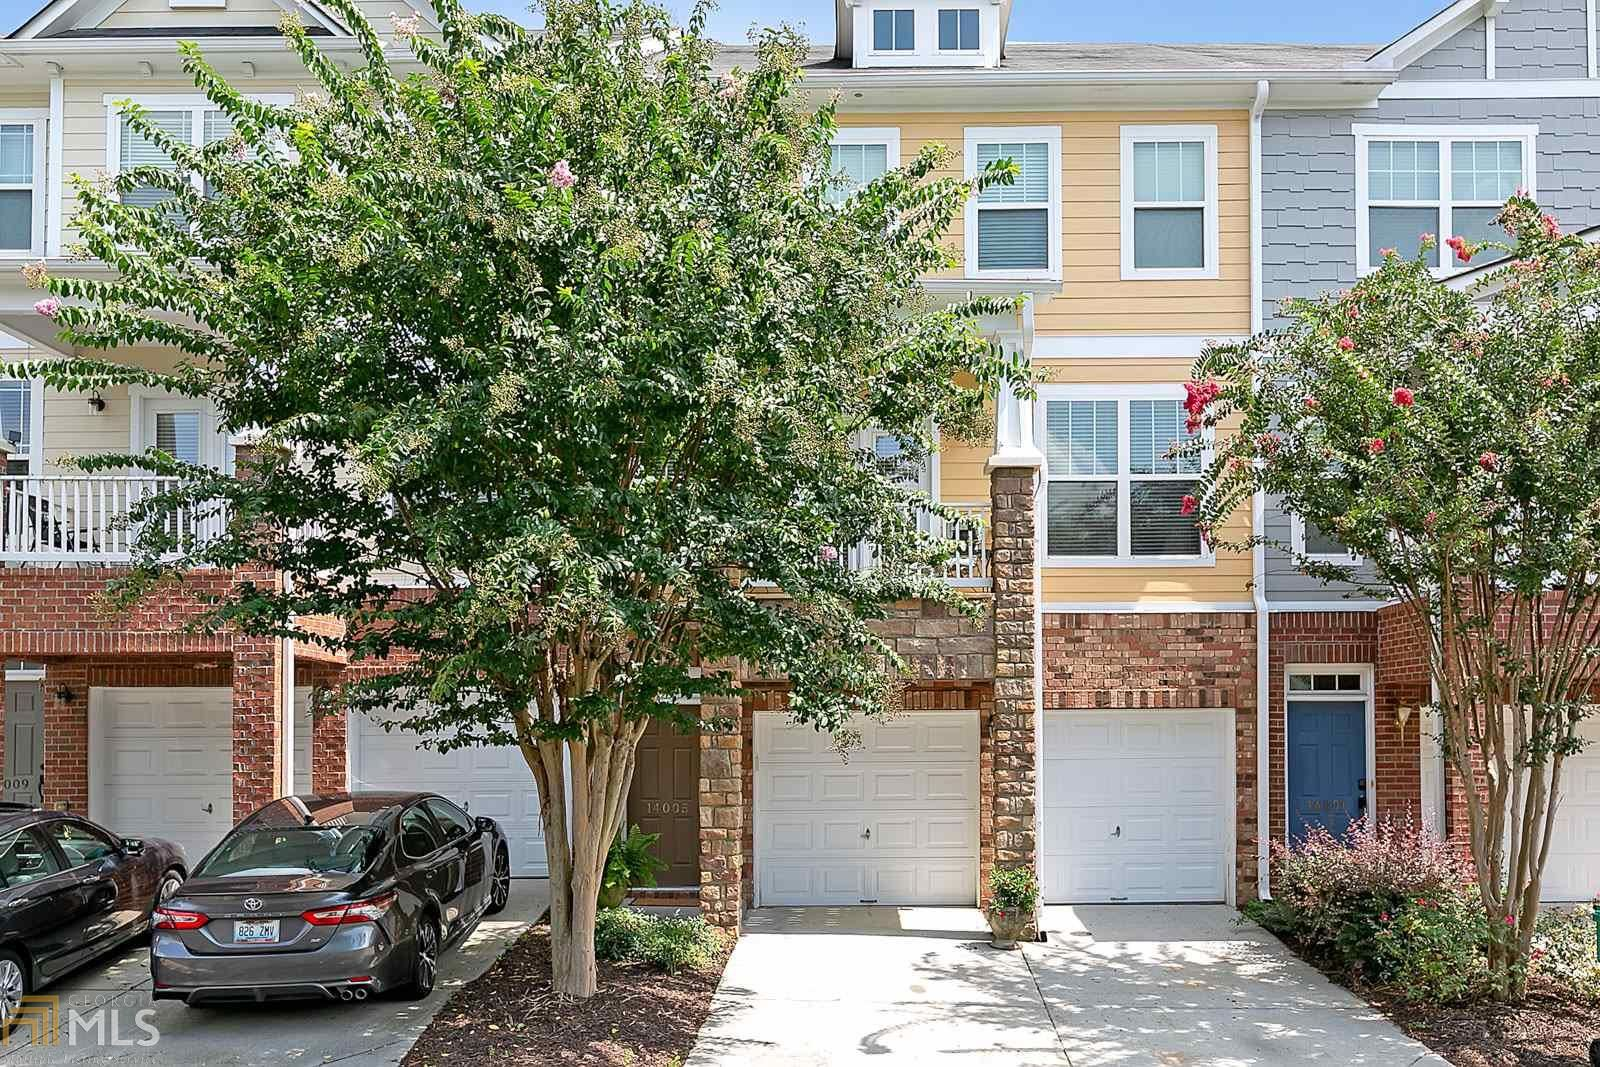 14005 Galleon T Galleon, Alpharetta, GA 30004 - MLS#: 8853119